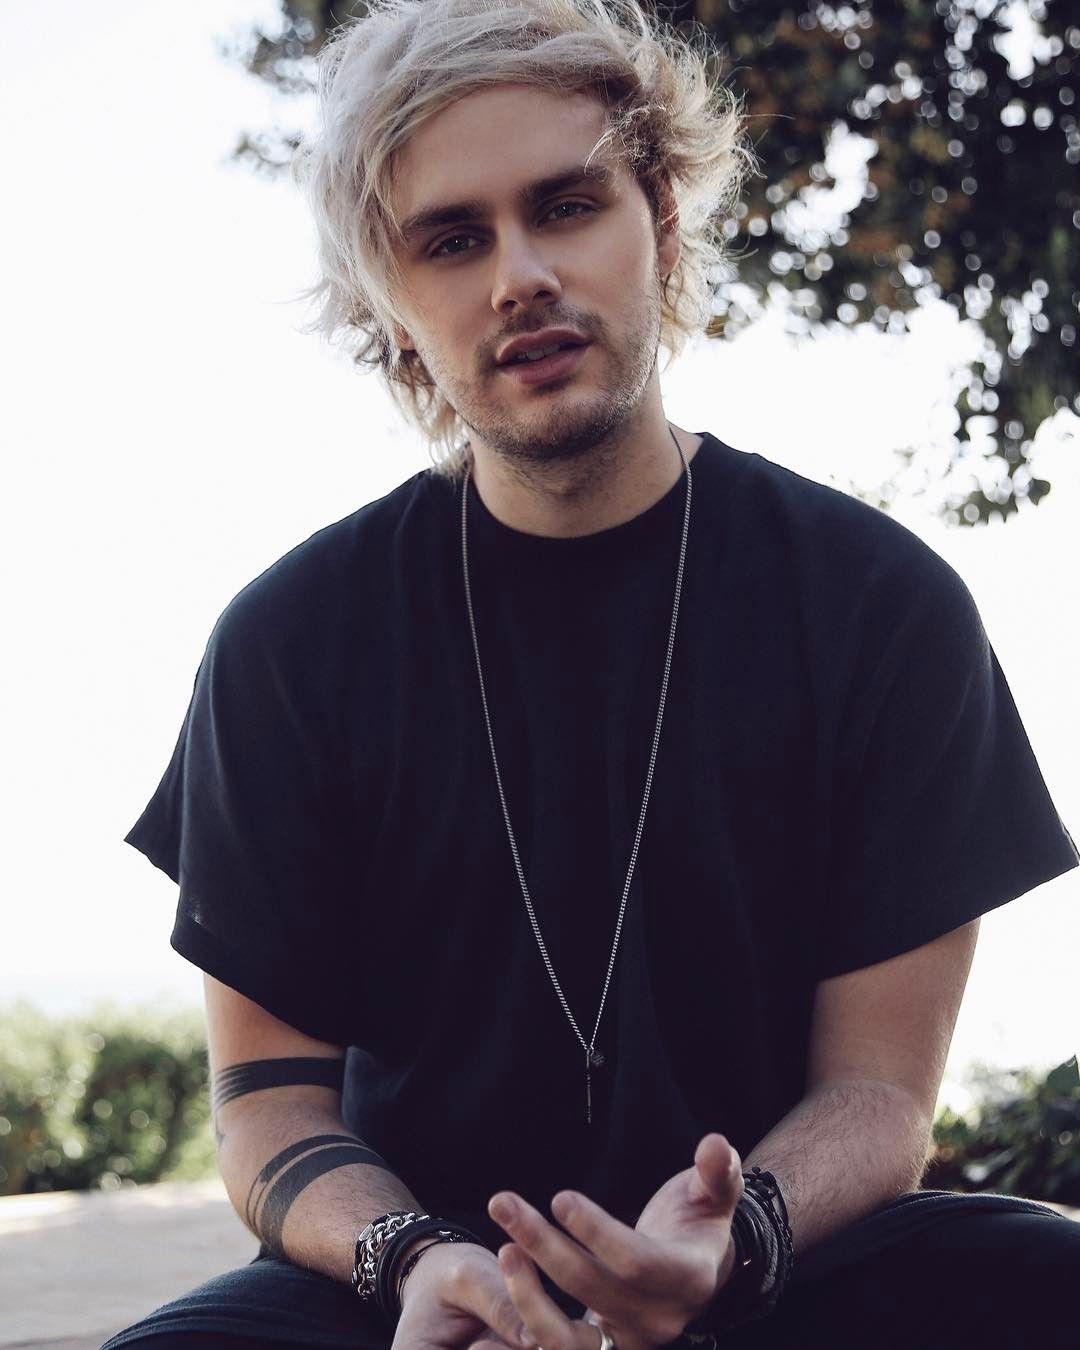 Pin by Fay Siegel on 5sos in 2019 | Michael clifford, 5sos ...